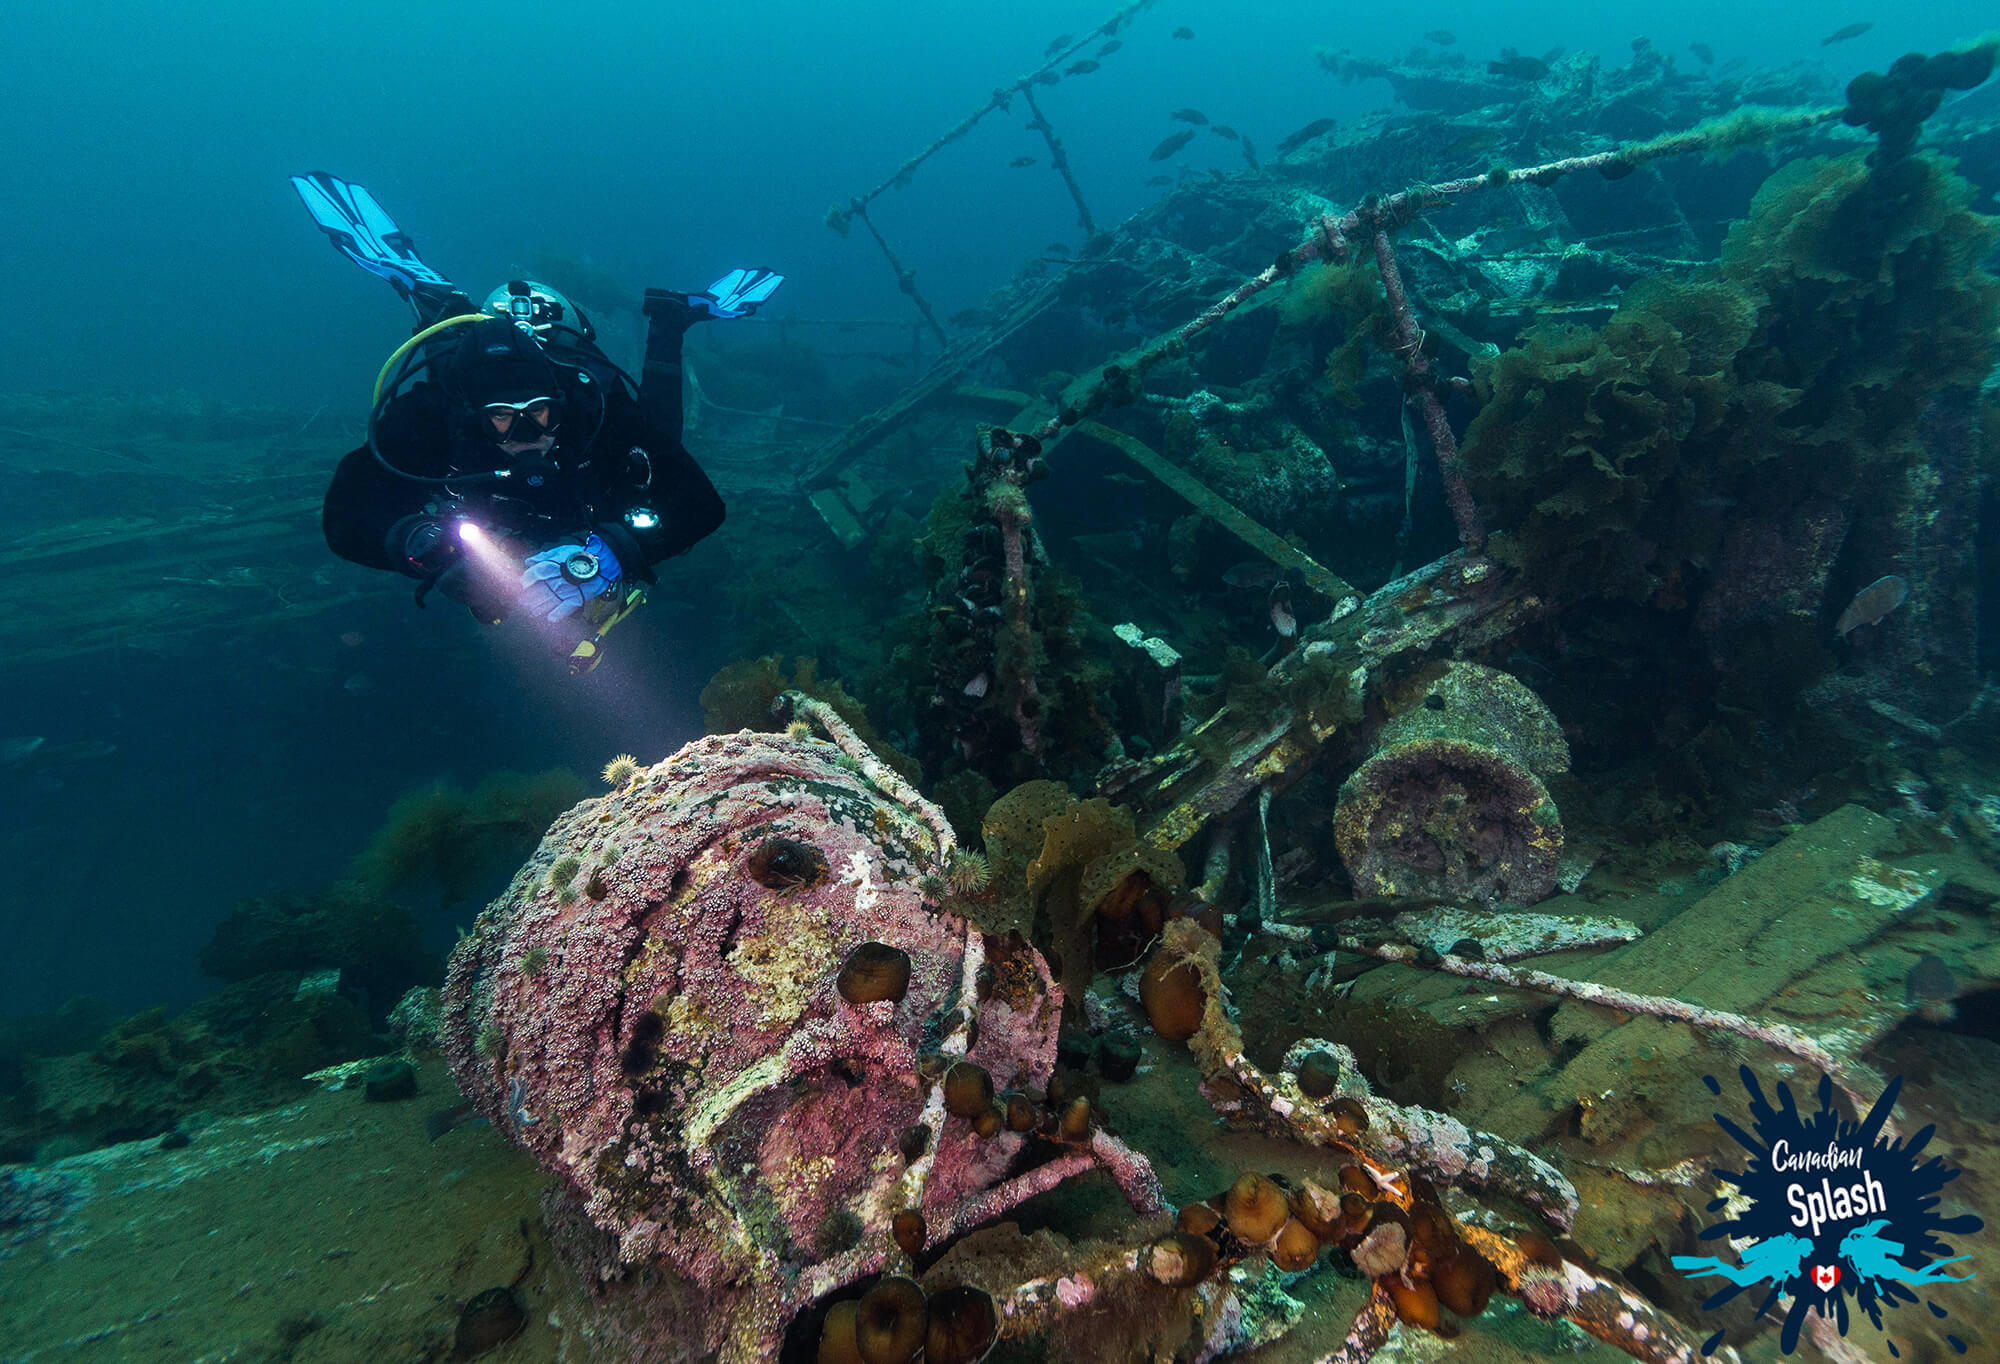 The PLM Shipwreck Motor with a Scuba Diver Looking at it with a Light on Bell Island, Newfoundland, Canadian Splash